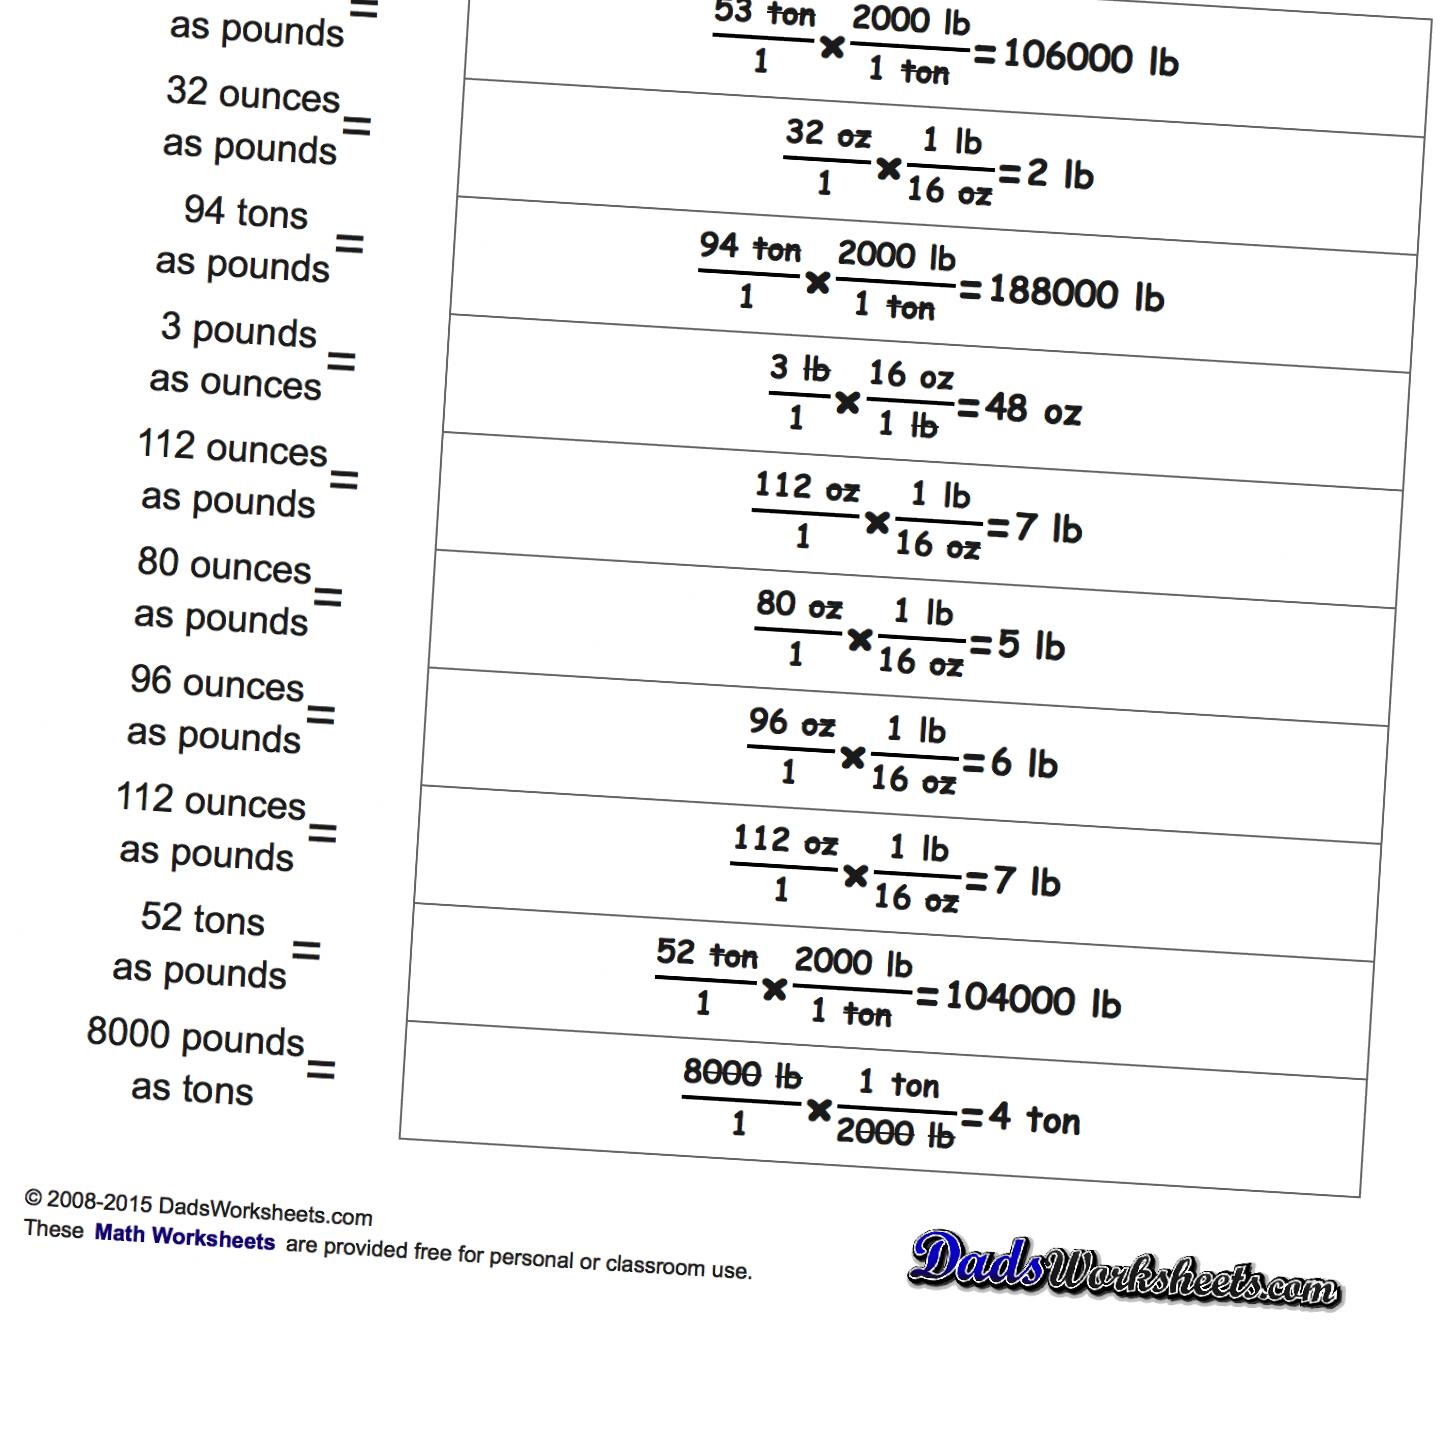 Math Worksheets: Imperial Unit Conversions